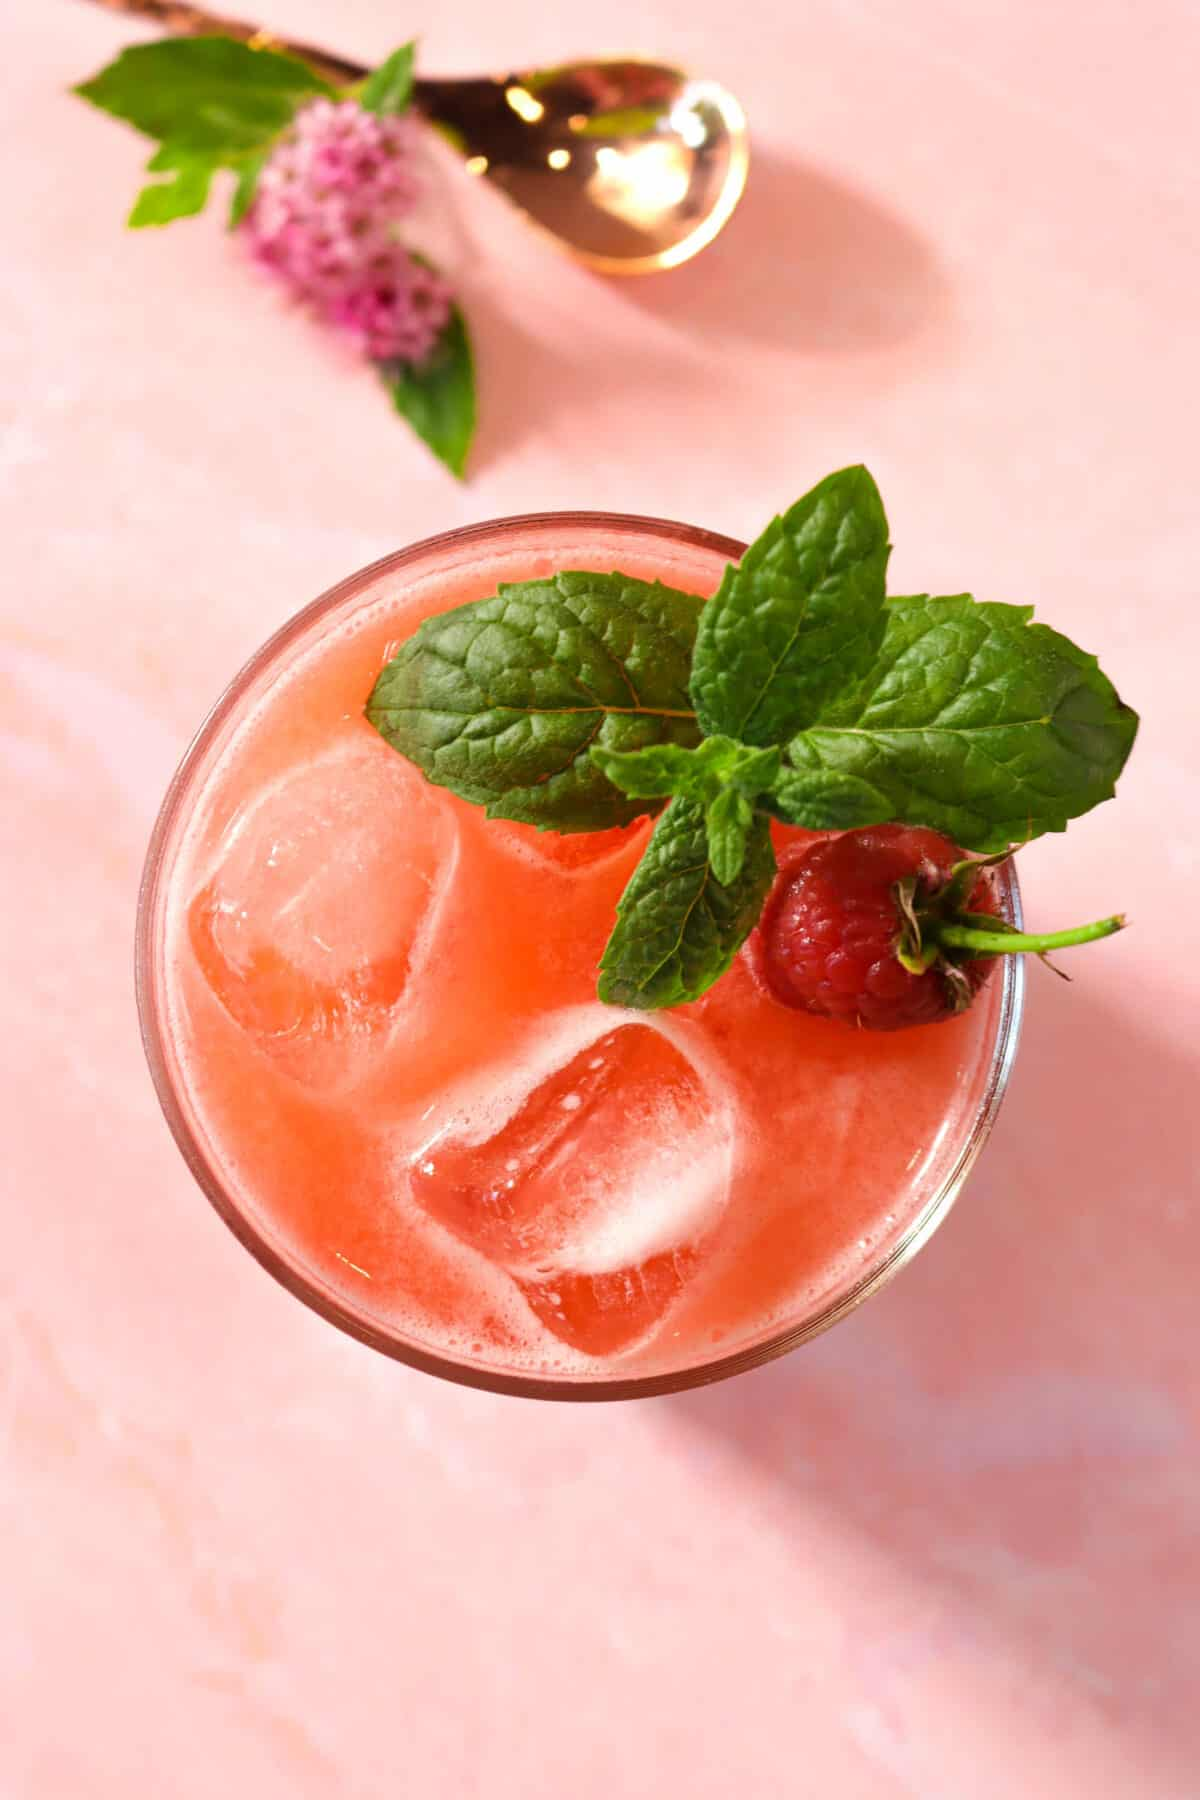 raspberry lemonade on a pink board with a mint sprig, flowers, and a copper spoon